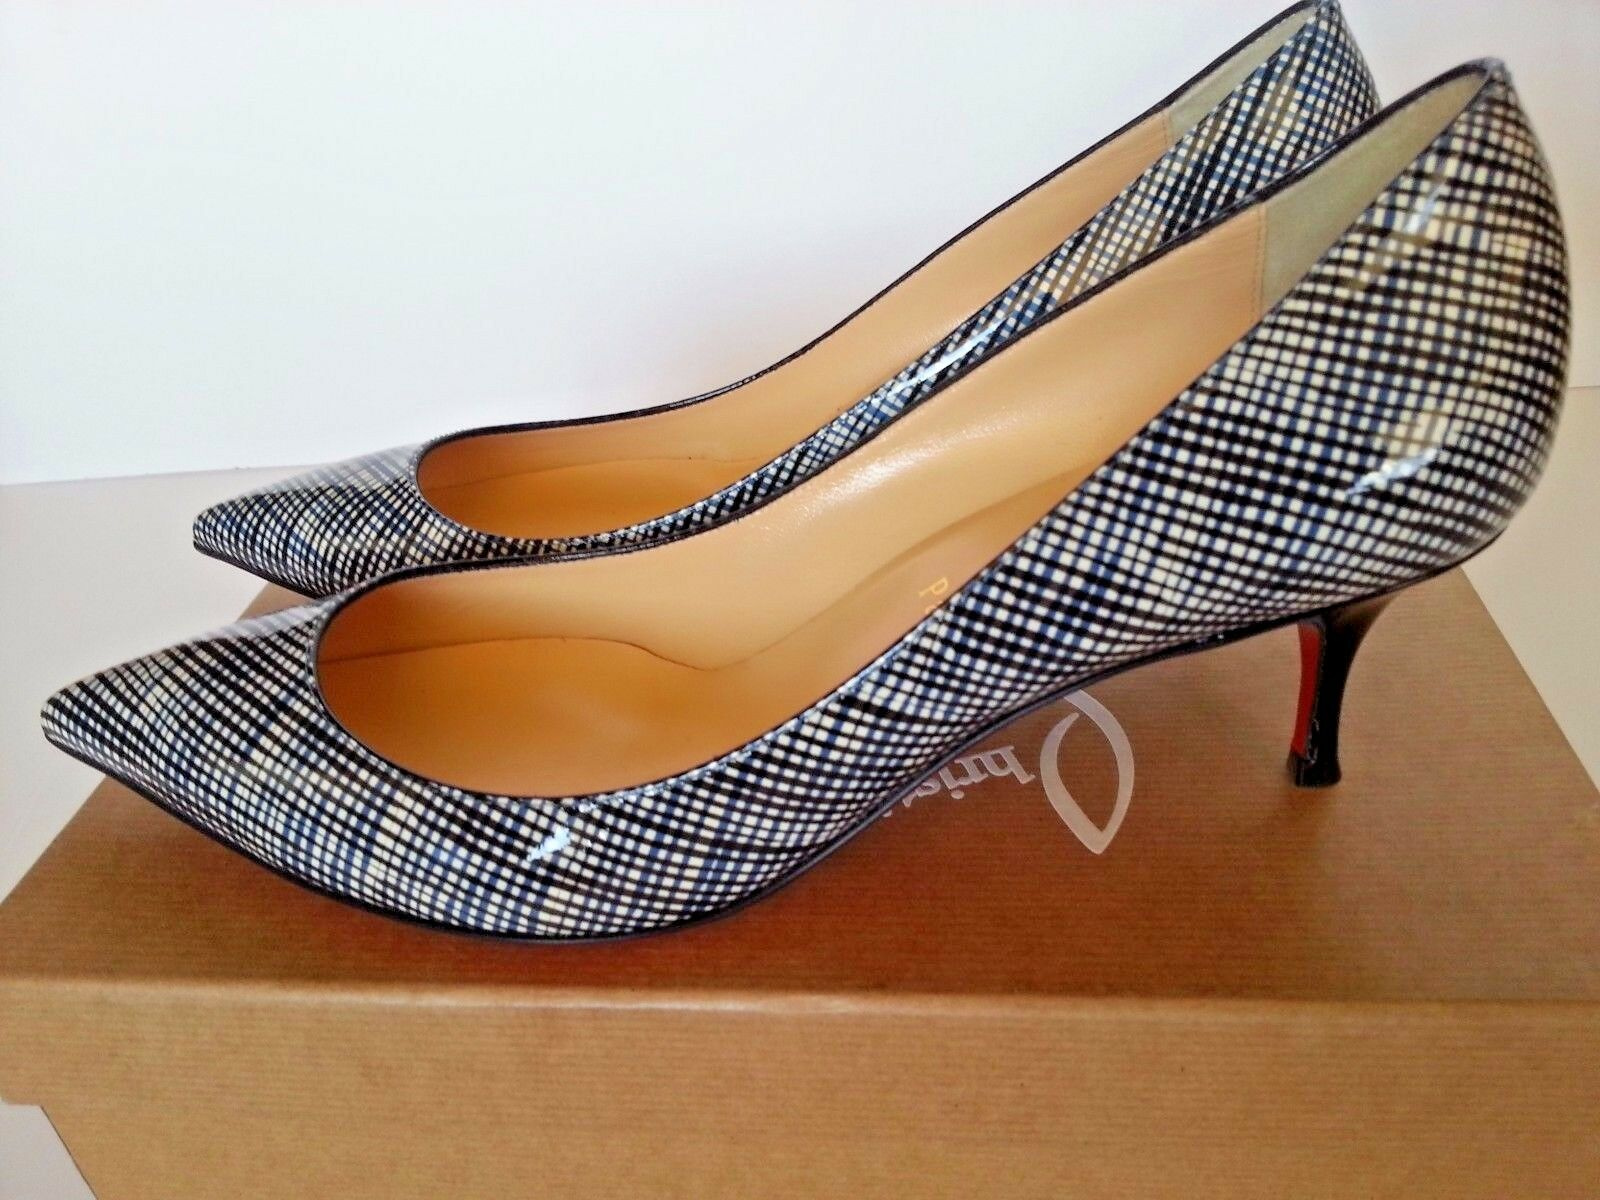 New New New Christian Louboutin  Pigalle Follies 55 Pump Low Heel shoes Navy Black  39.5 13f5d4